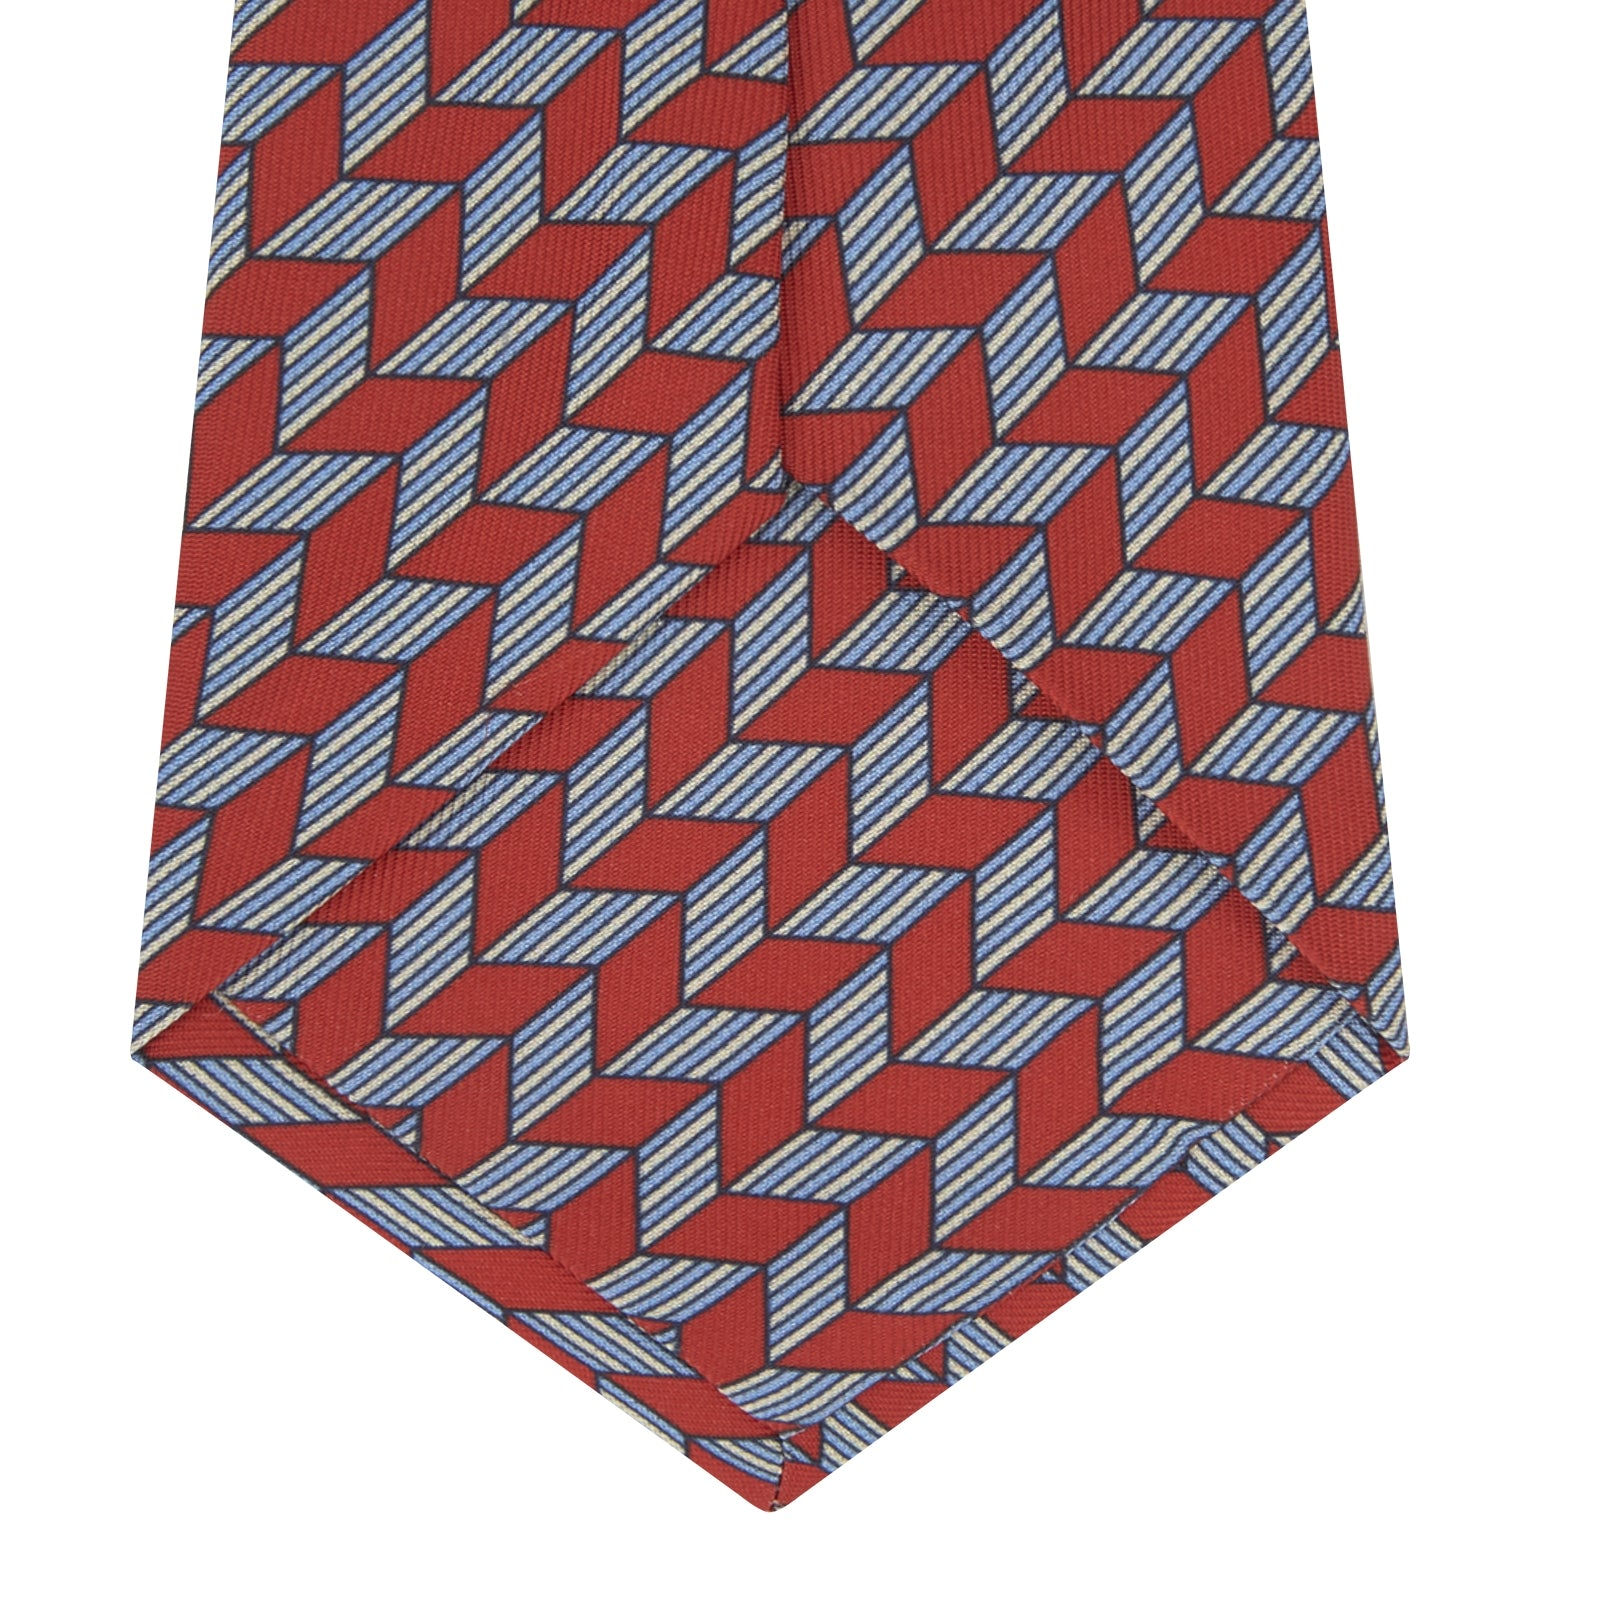 Red and Blue Arrow Printed Silk Tie